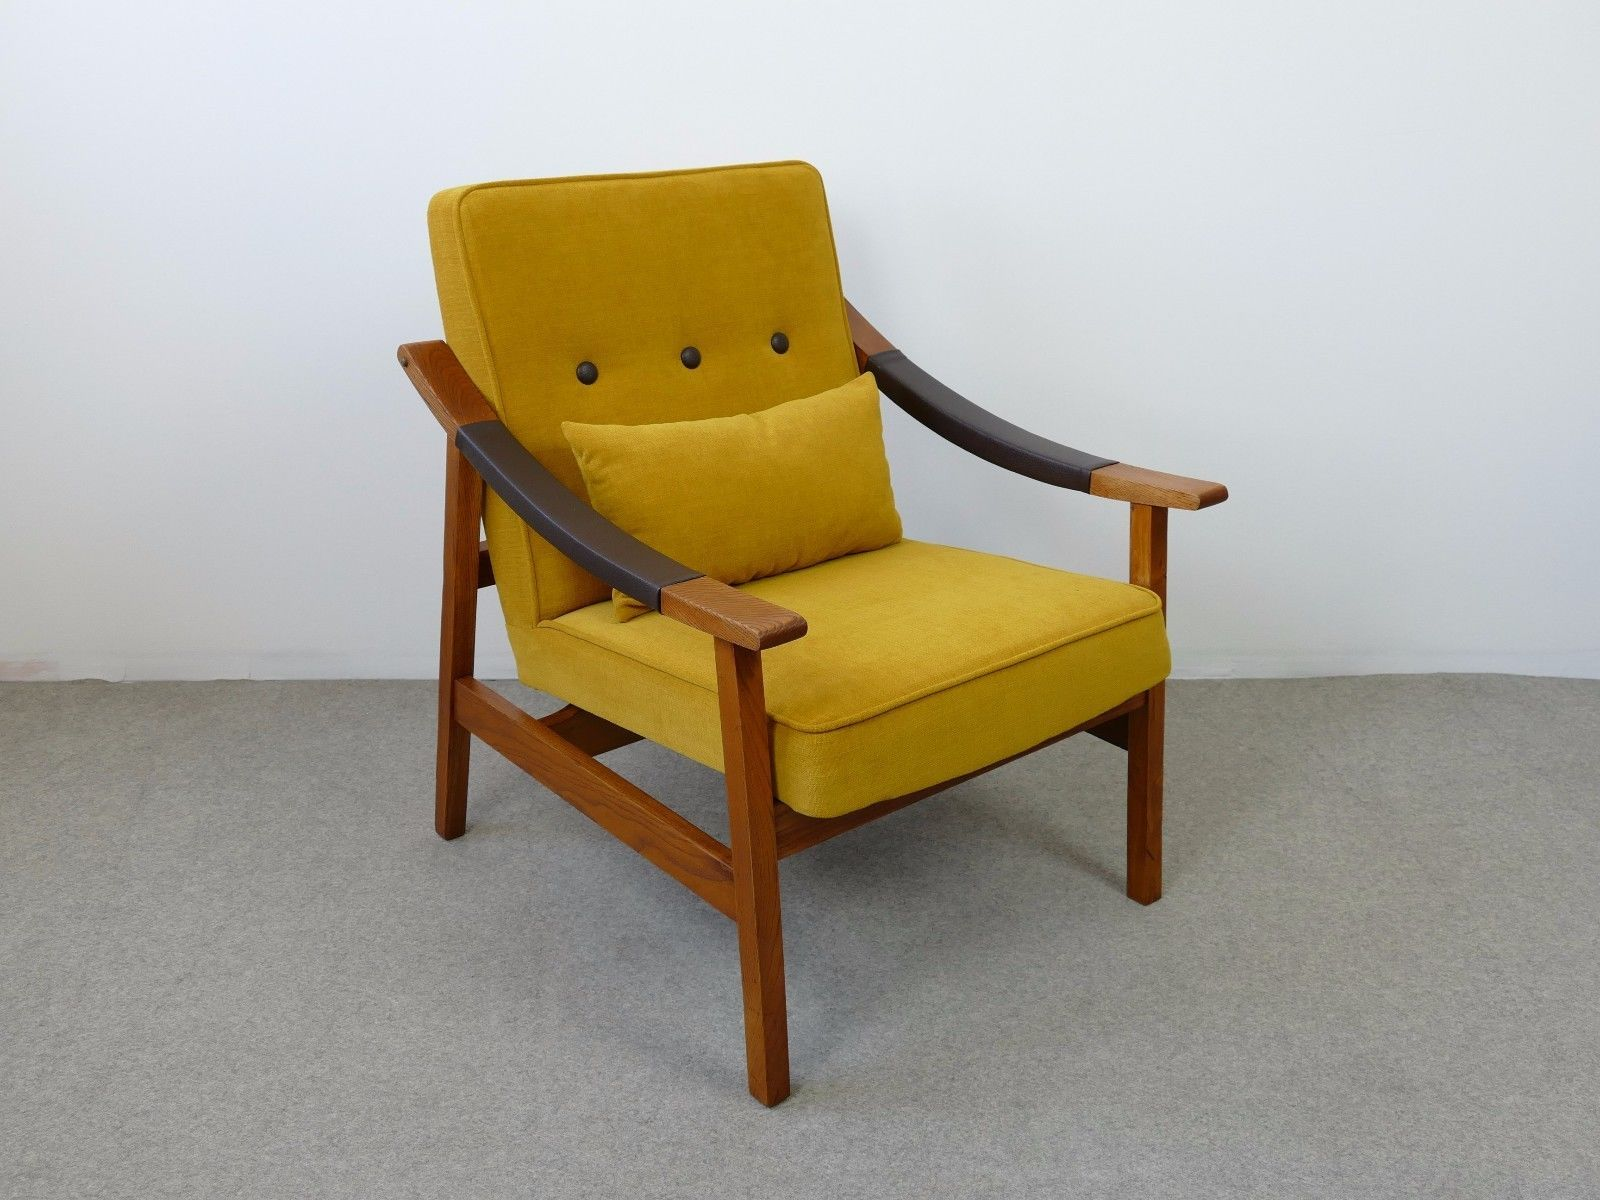 midcentury yellow armchair s for sale at pamono - midcentury yellow armchair s